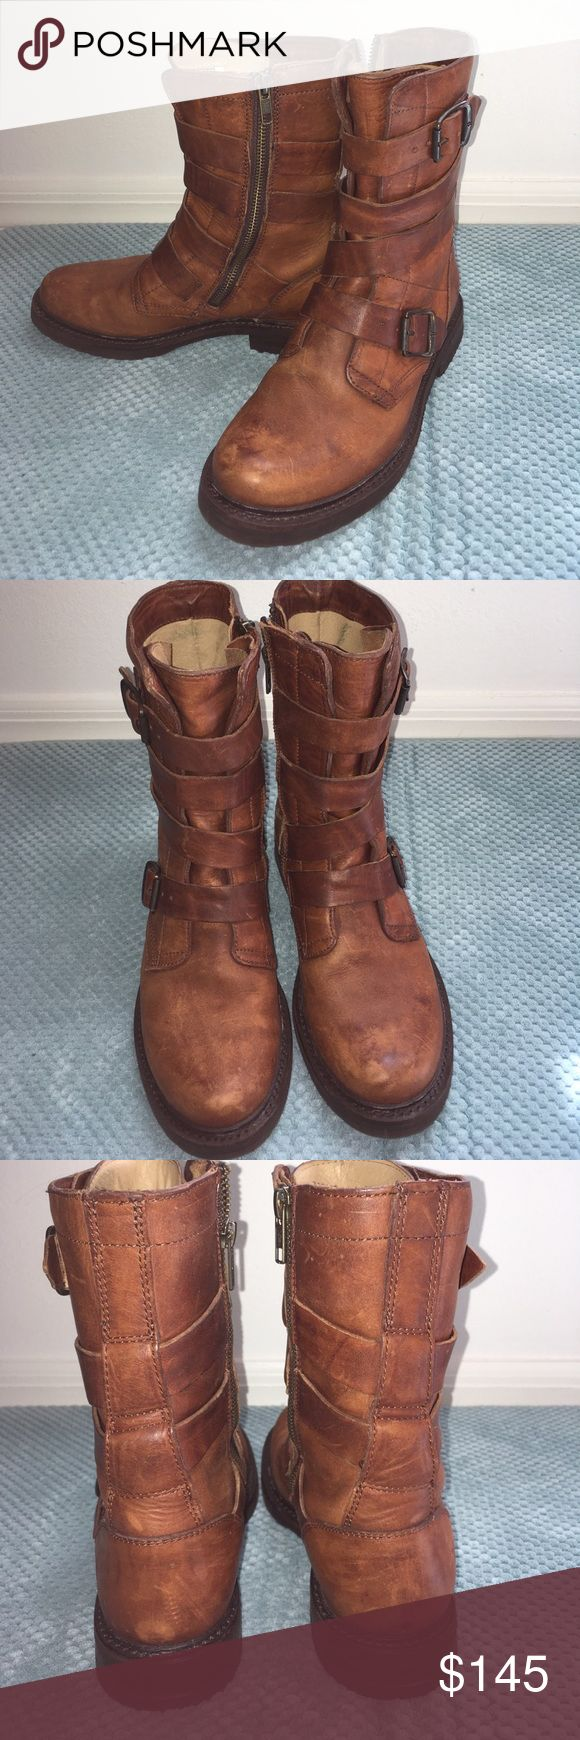 Cognac Frye Veronica Tanker Boots Pristine condition... only worn once.  Faint denim transfer on inside. Otherwise, perfect! Sadly, they're too small for me:( Frye Shoes Combat & Moto Boots